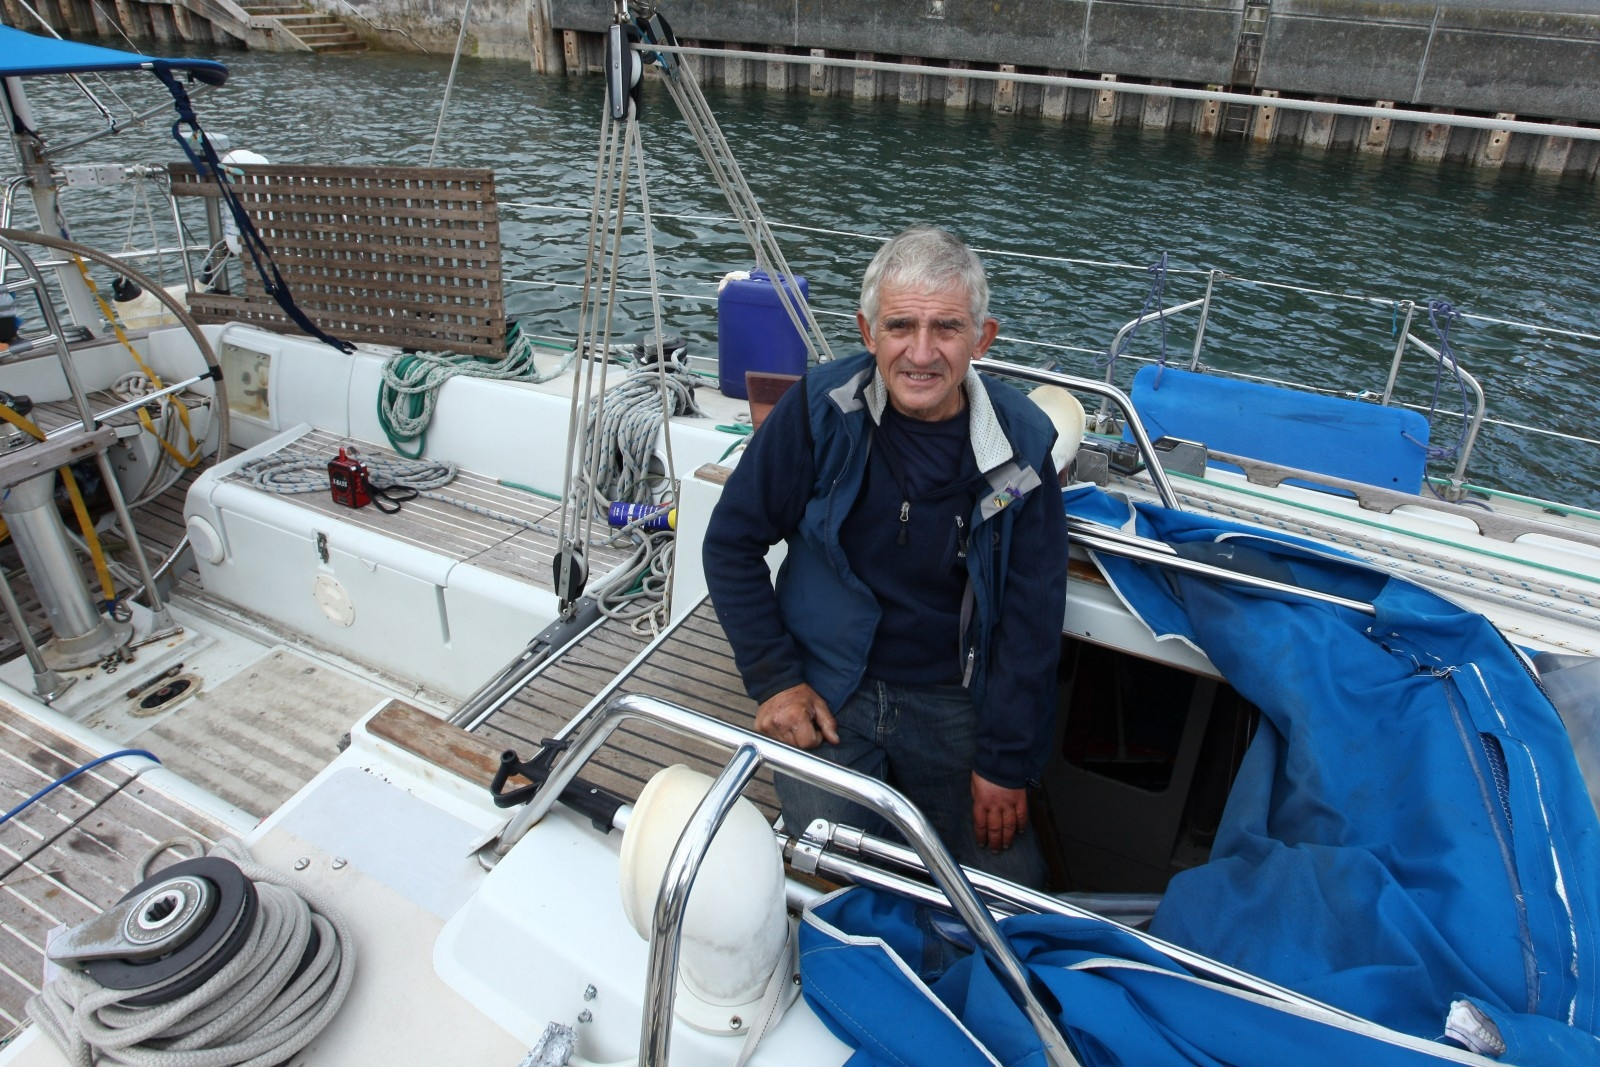 Brave Keith claims to be the first disabled person to complete a trip across the Atlantic without any help or support